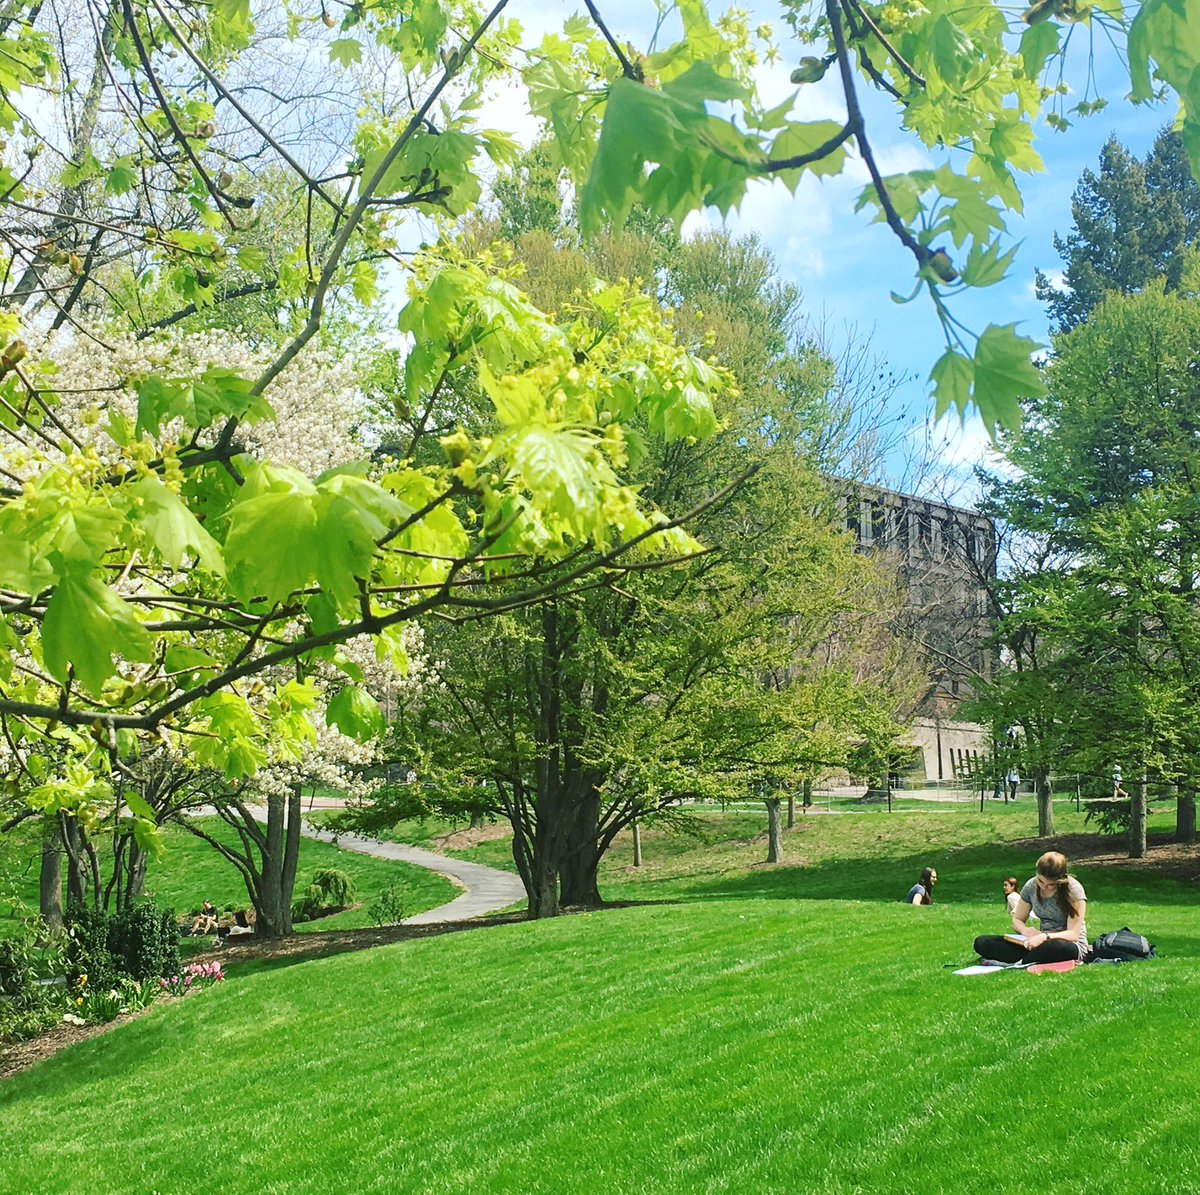 Blue skies & sunshine 🌞 #Cornell https://t.co/KGhUydhRtb